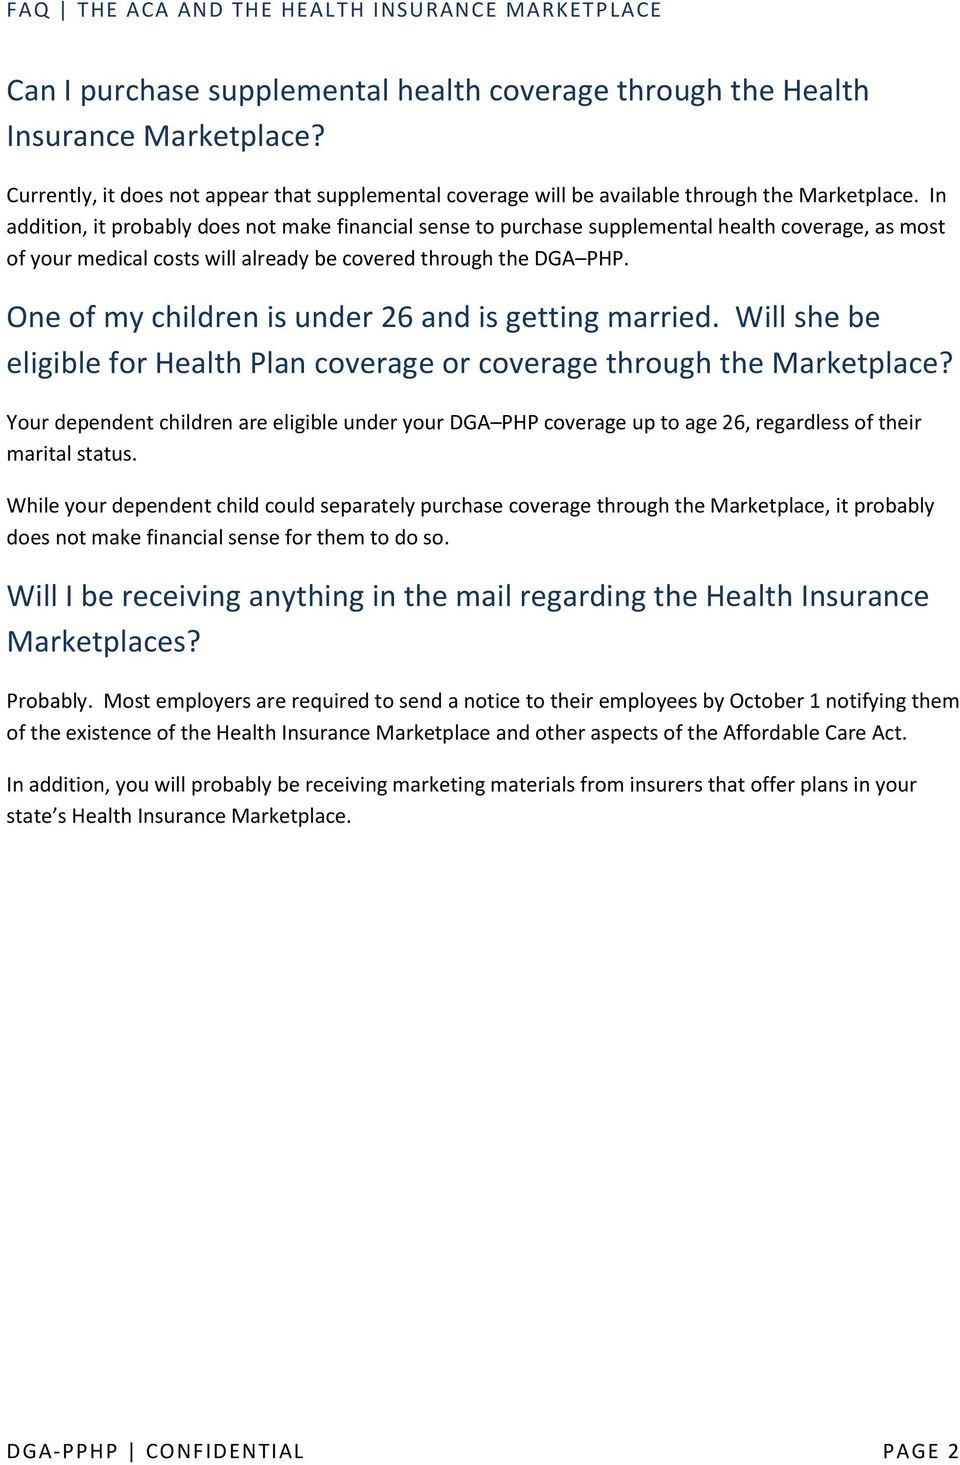 One of my children is under 26 and is getting married. Will she be eligible for Health Plan coverage or coverage through the Marketplace?